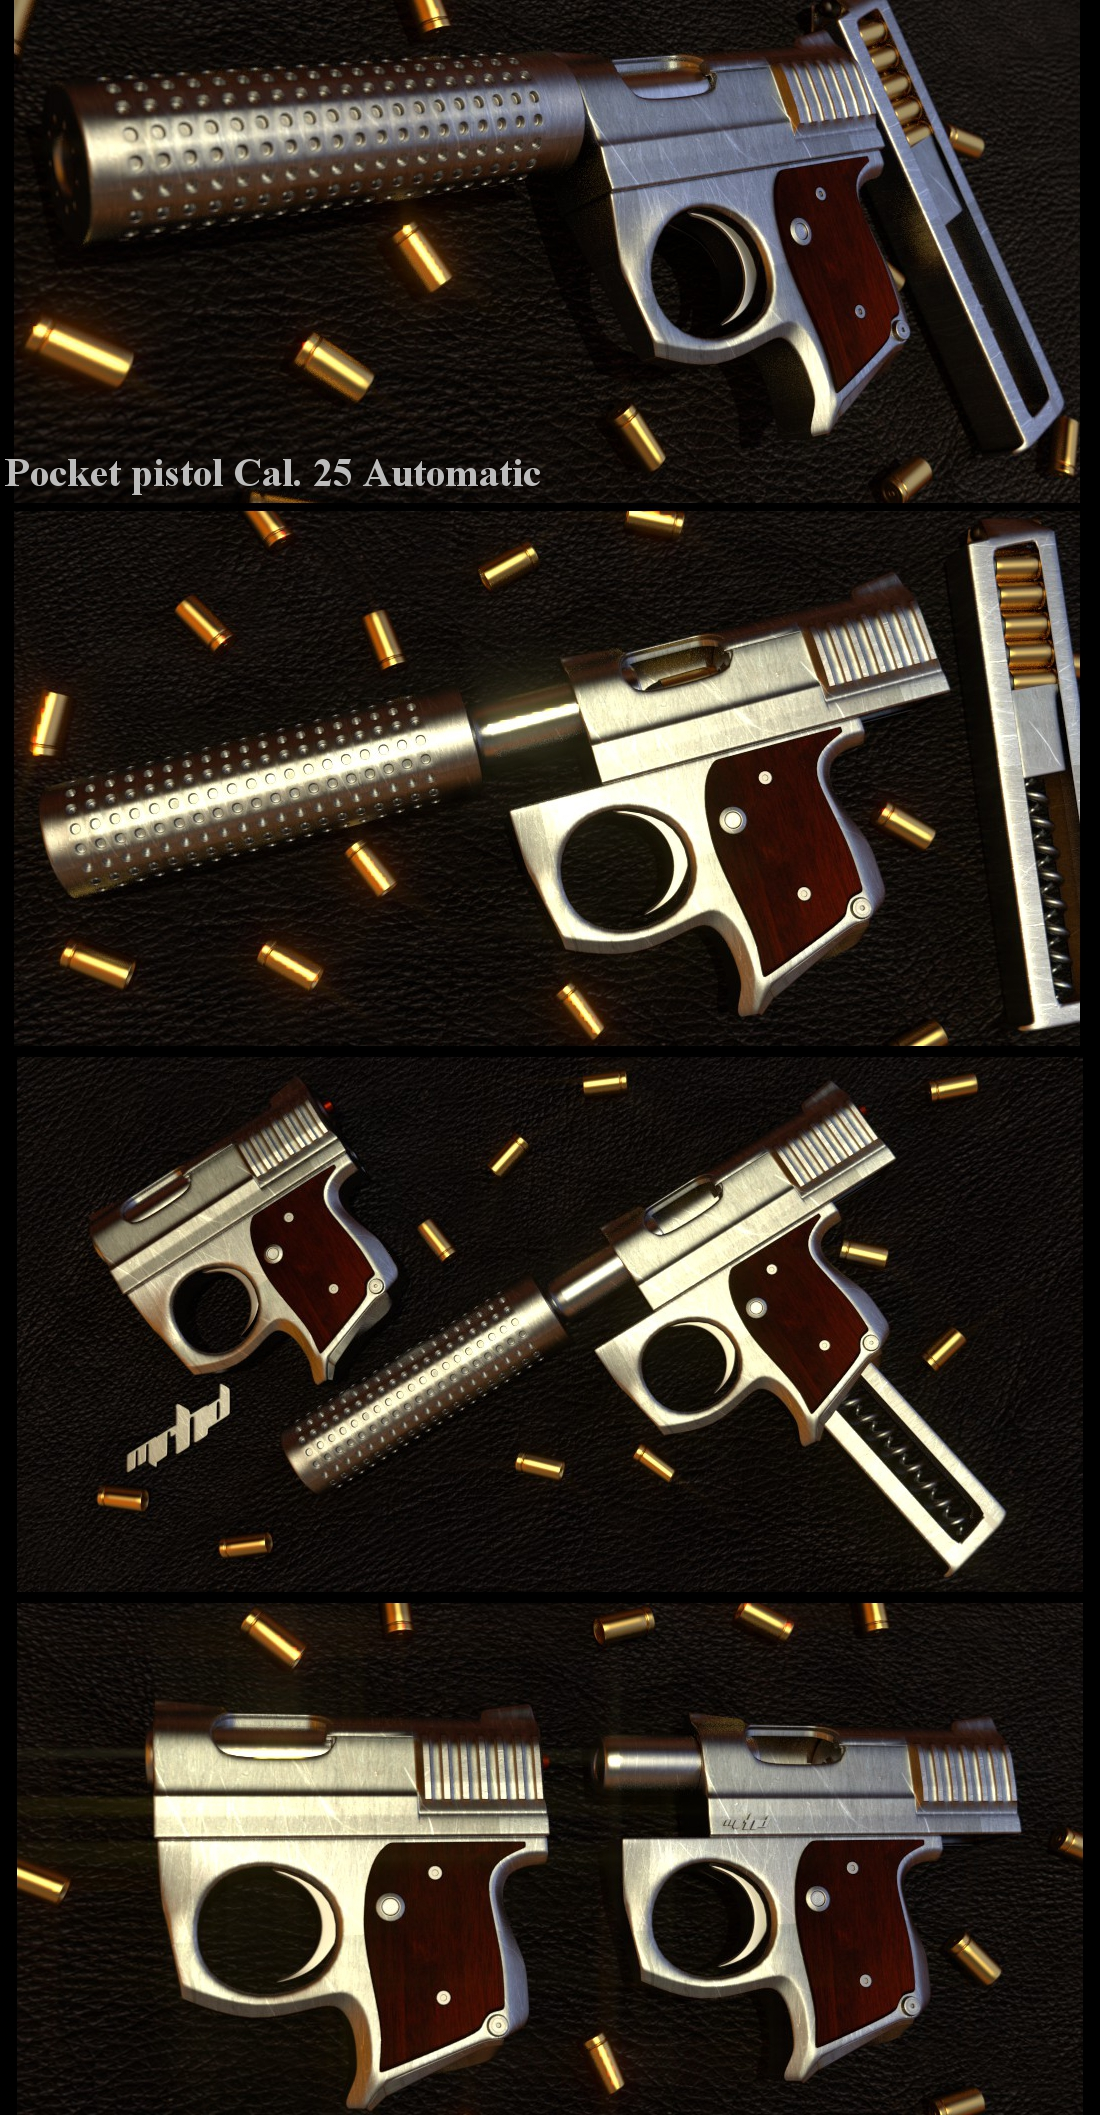 P.P. Cal. 25 automatic by mrhd